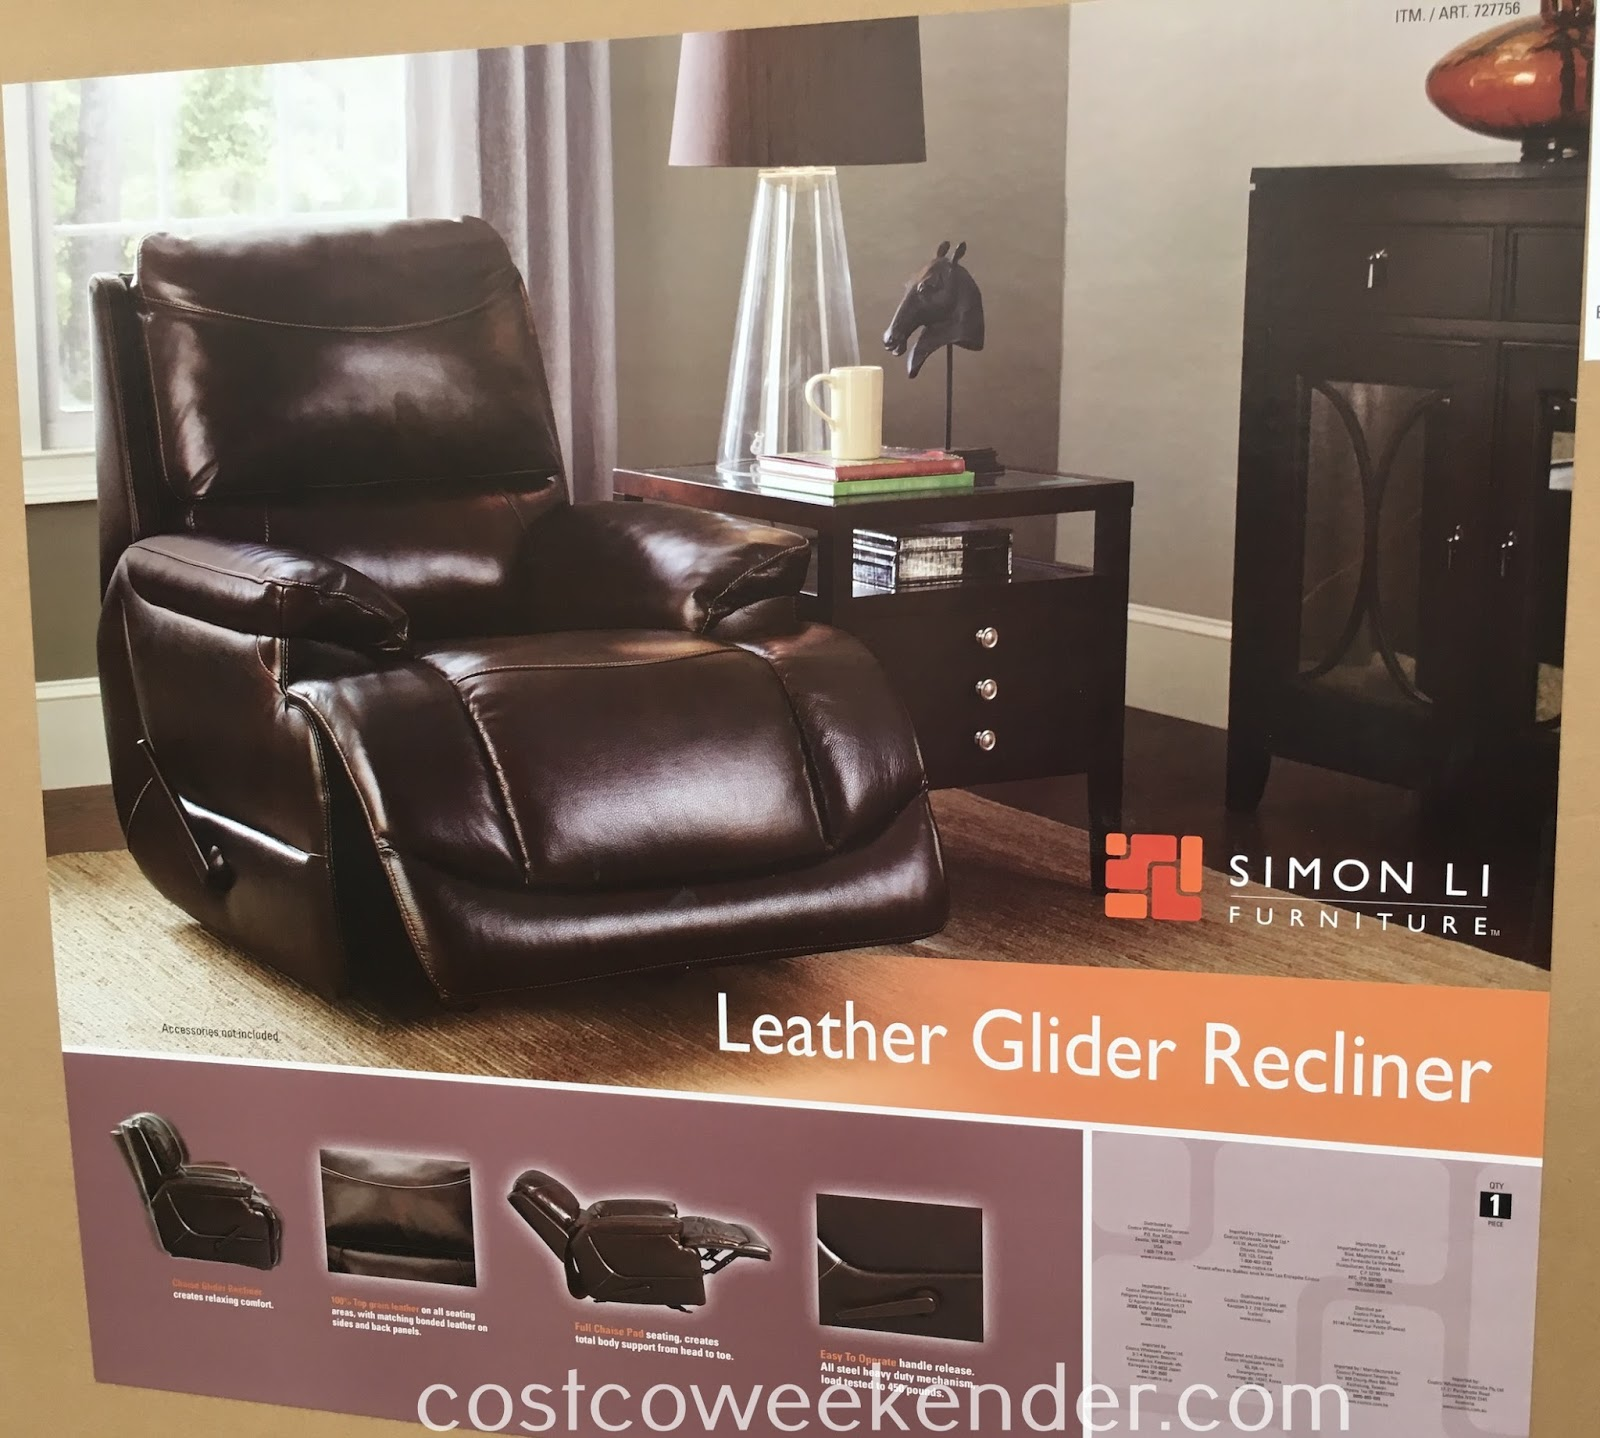 Costco 727756 - Simon Li Leather Glider Recliner Chair: great for any home